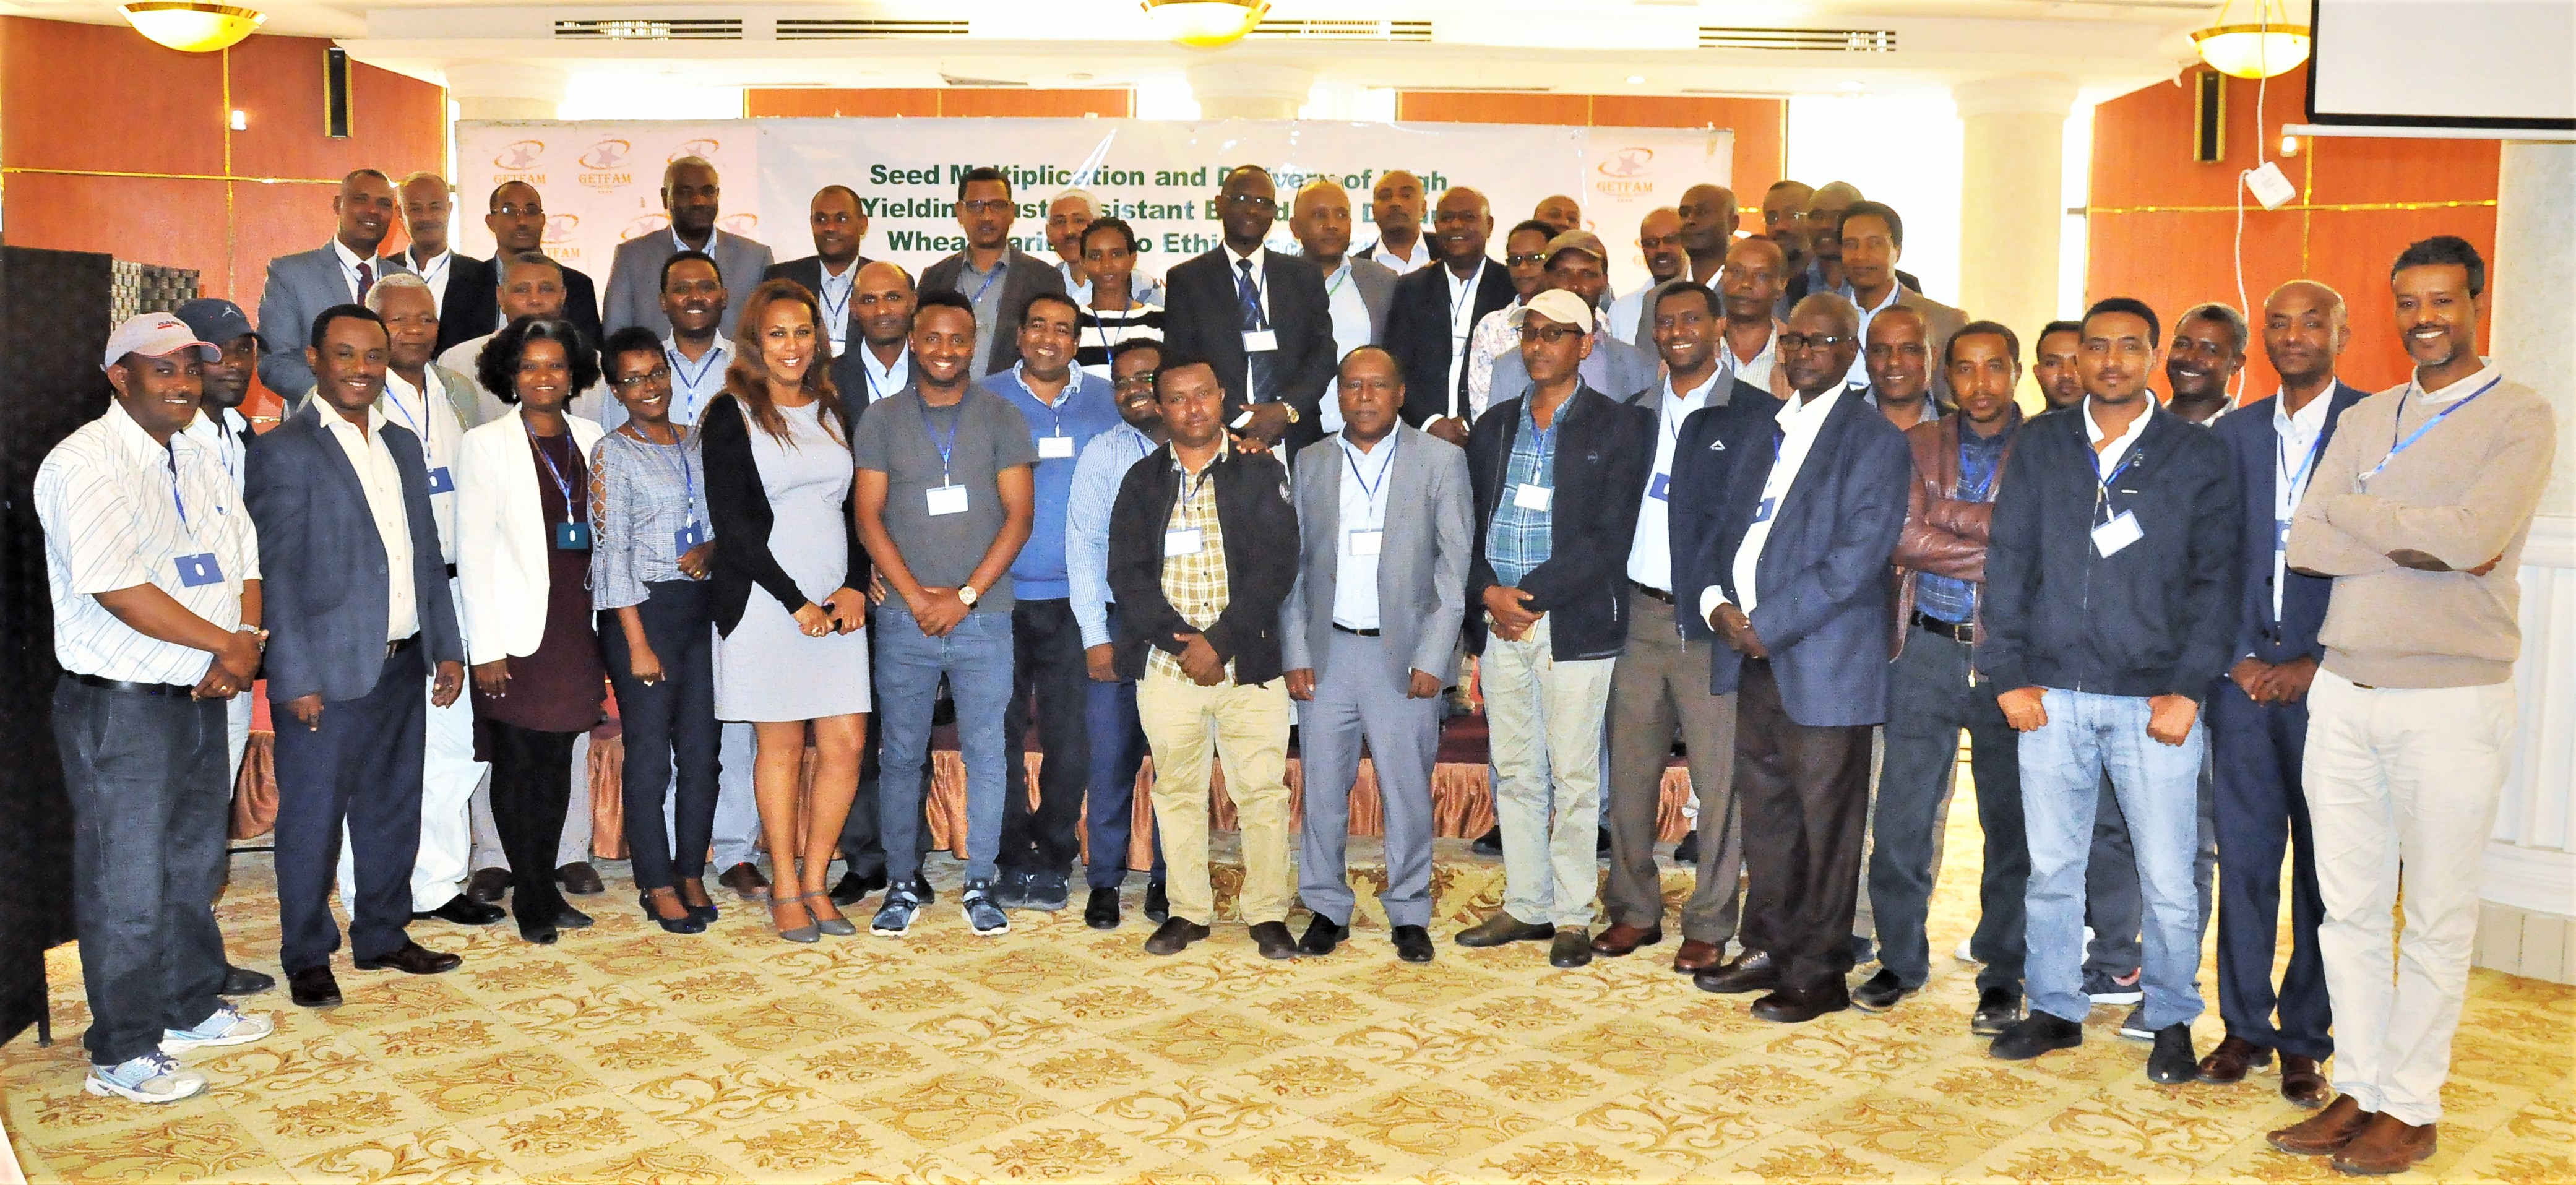 Participants of the project closure workshop stand for a group photo. (Photo: Semu Yemane/EIAR)